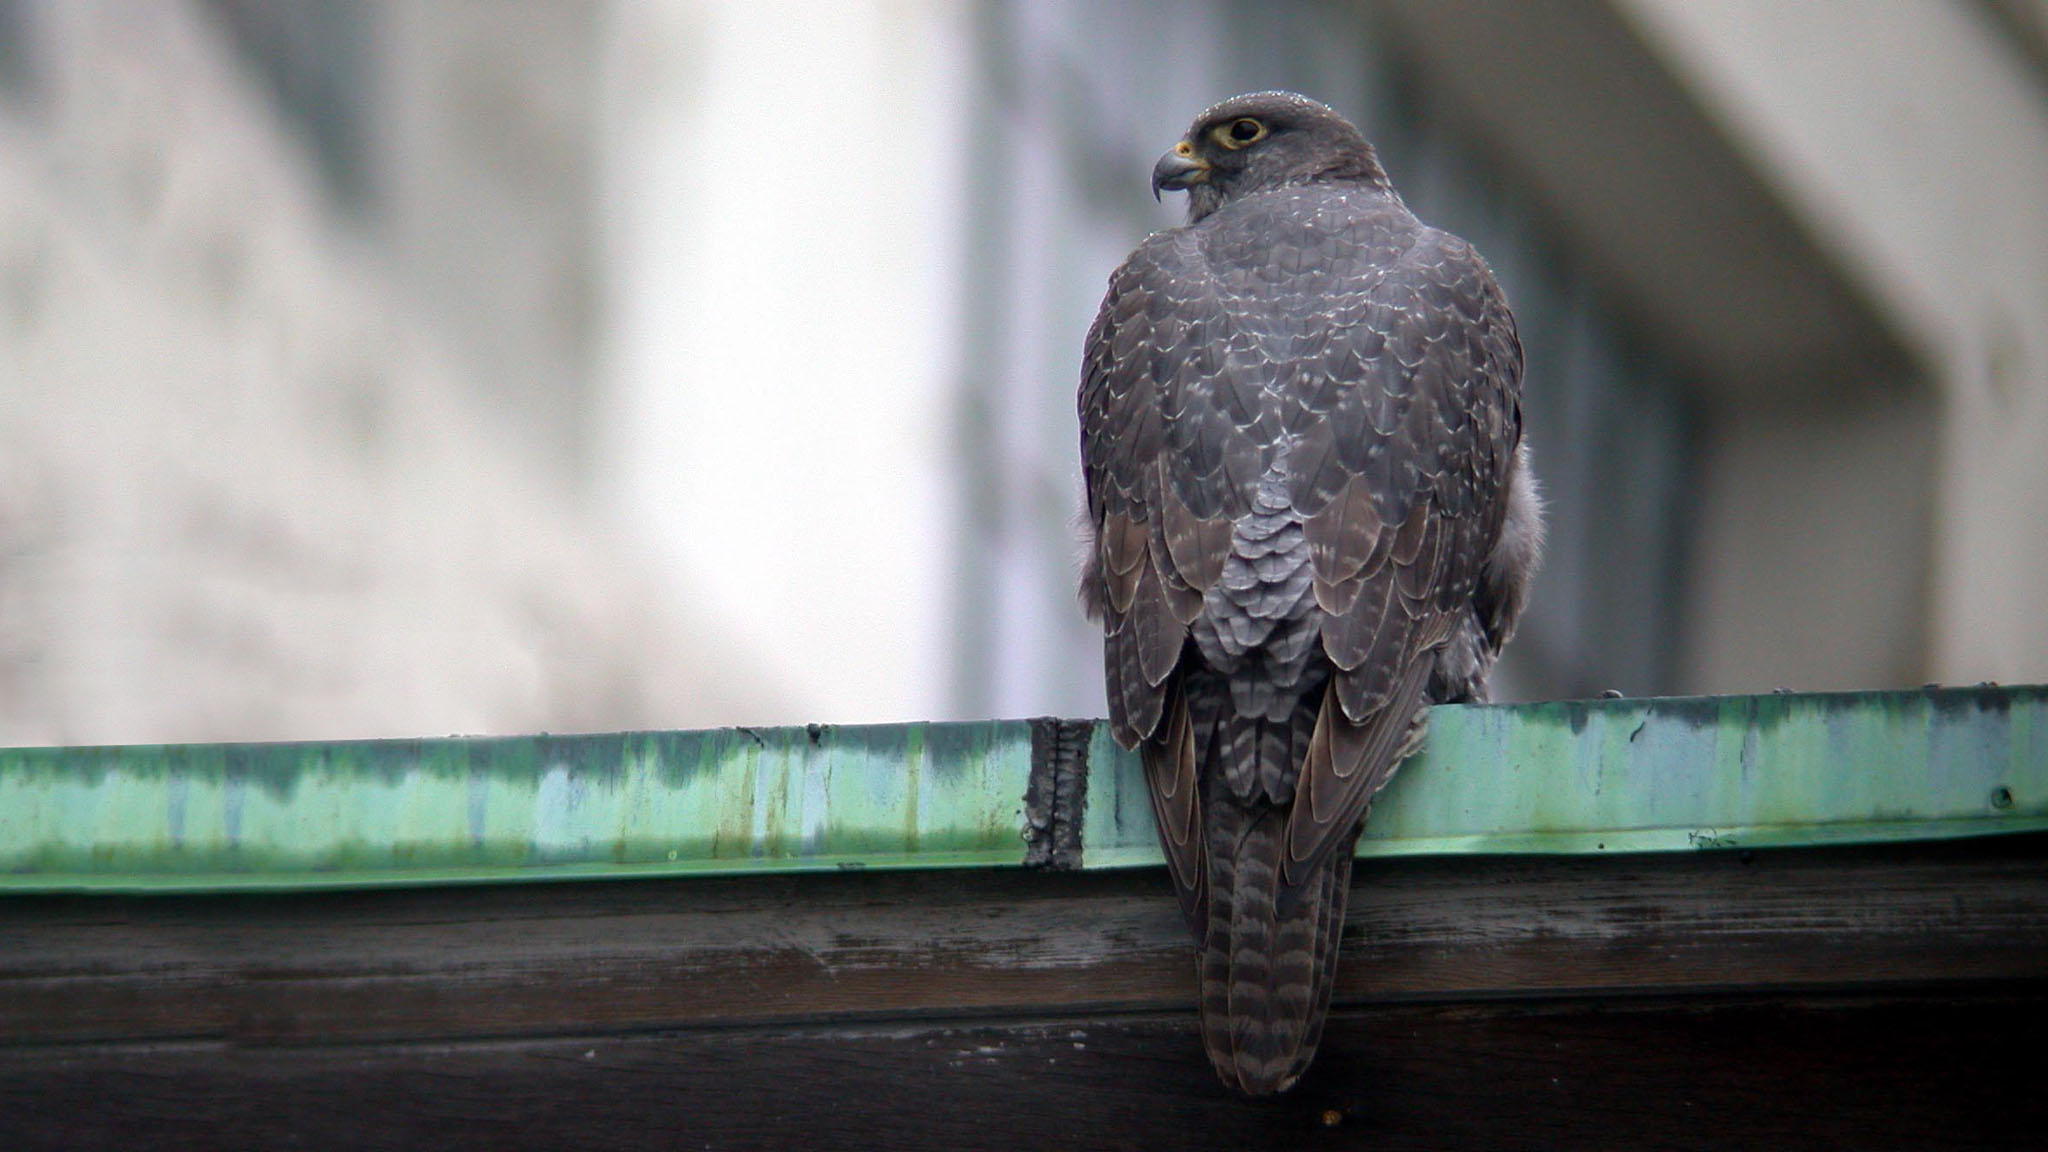 A Gyrfalcon of all things sitting on the Black Falcon Pier in Boston back in 2003. This Gyrfalcon spent a few weeks dining on Herring Gulls and wowing the birding world.